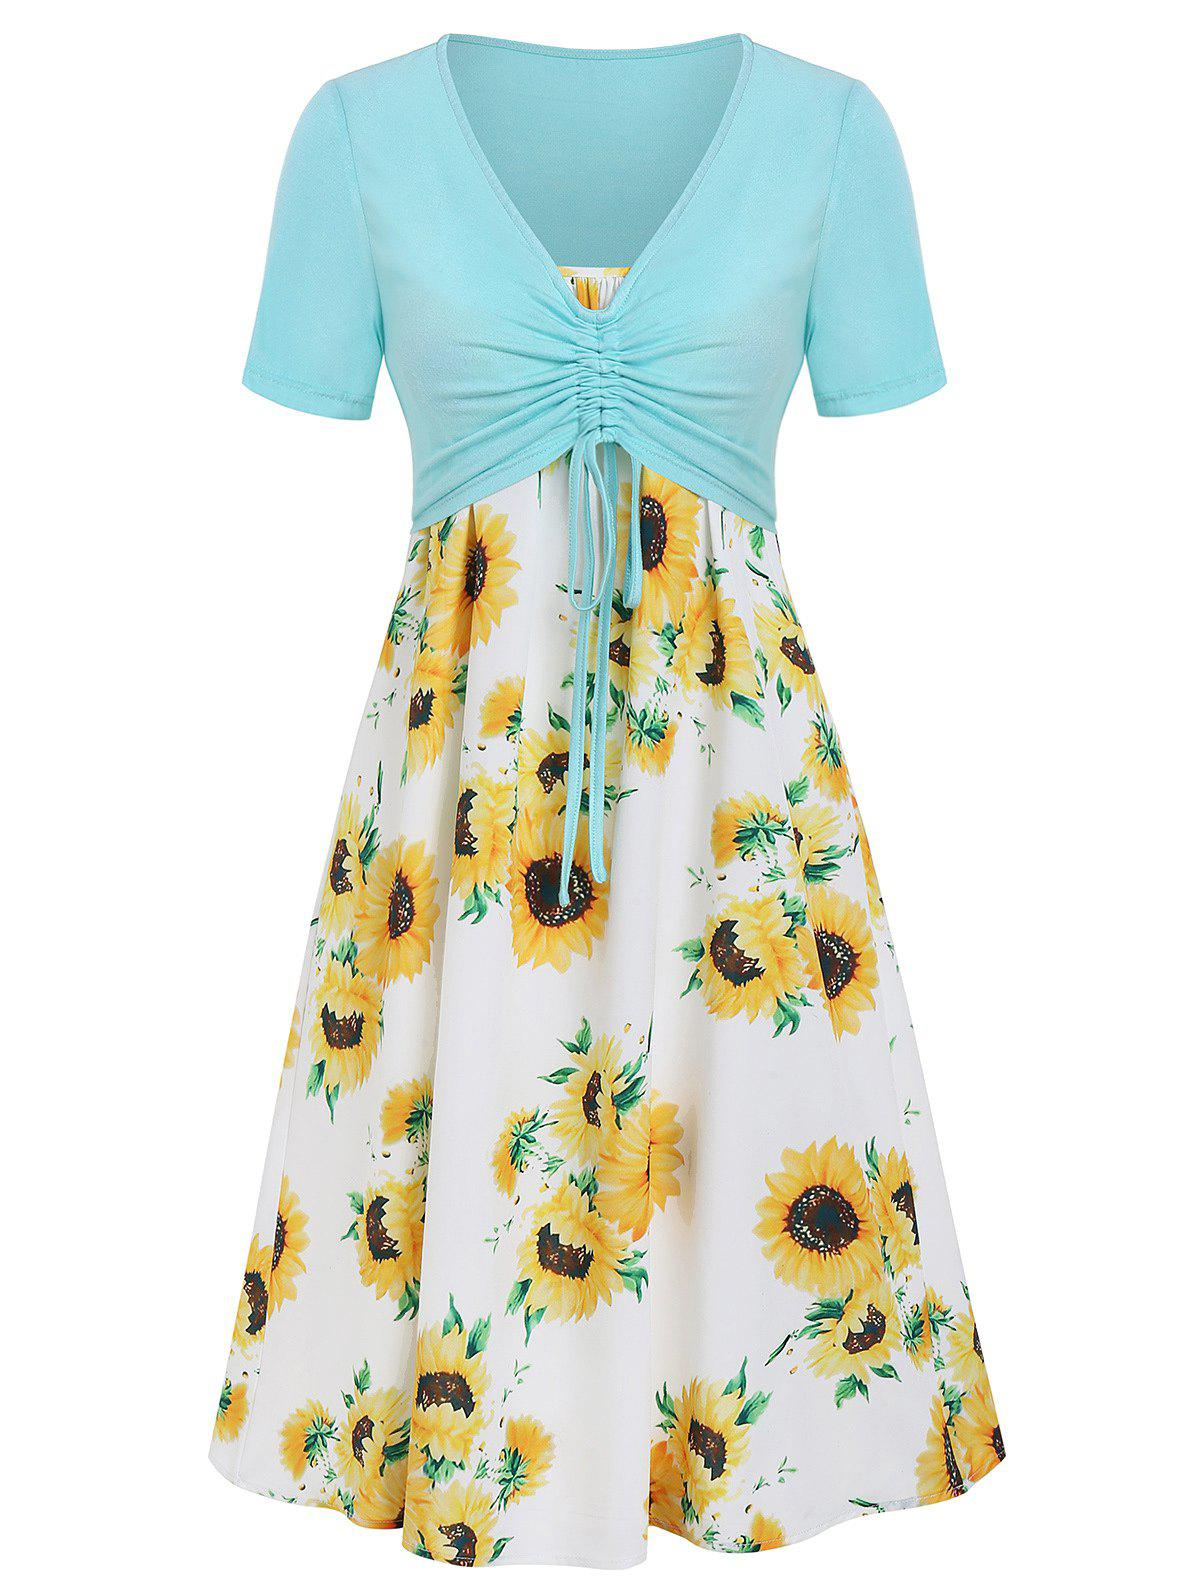 Store Cami Sunflower Dress with Plunging T-shirt